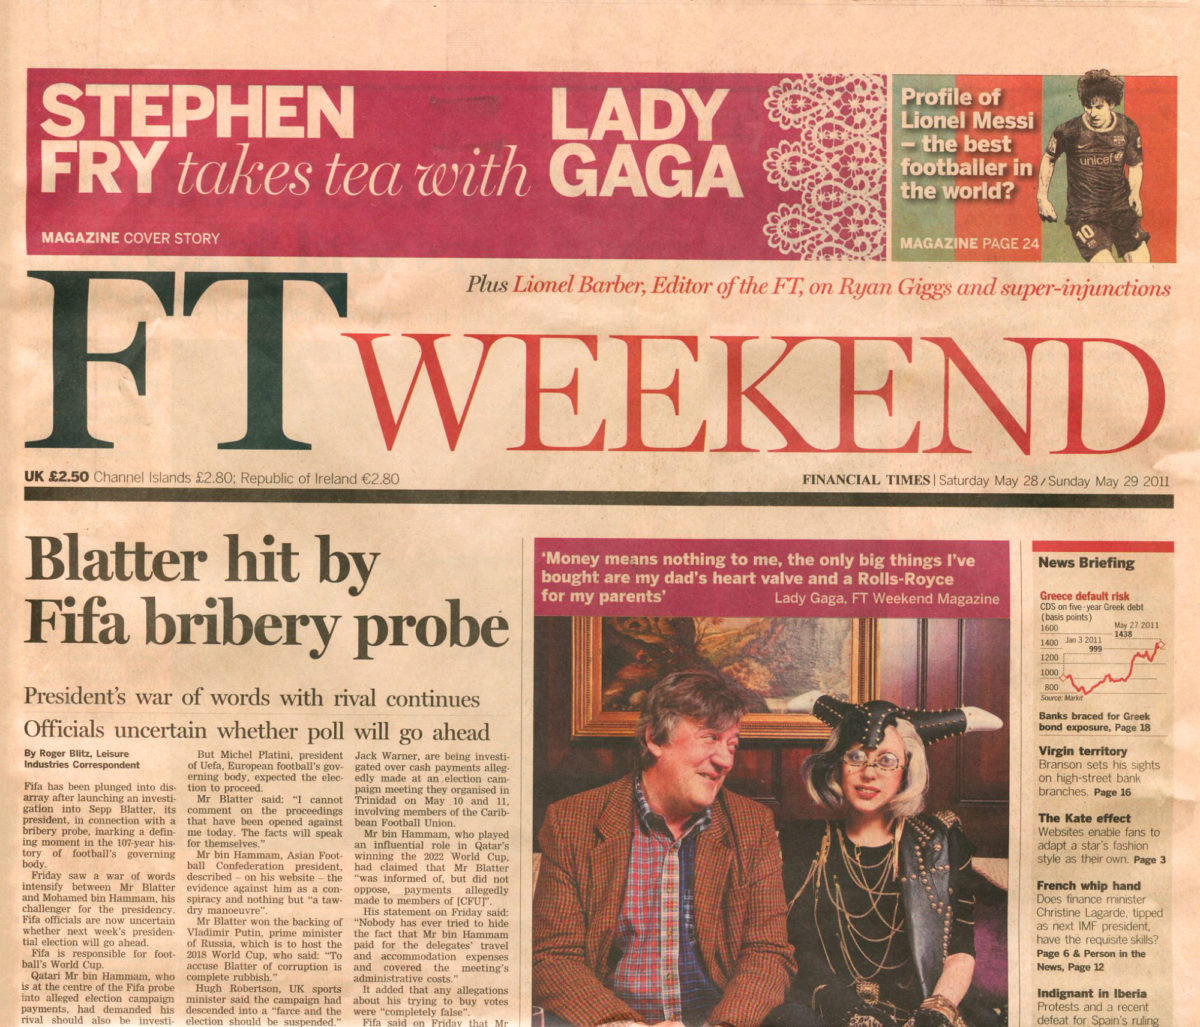 Ft Weekend Newspaper Cover May 2011